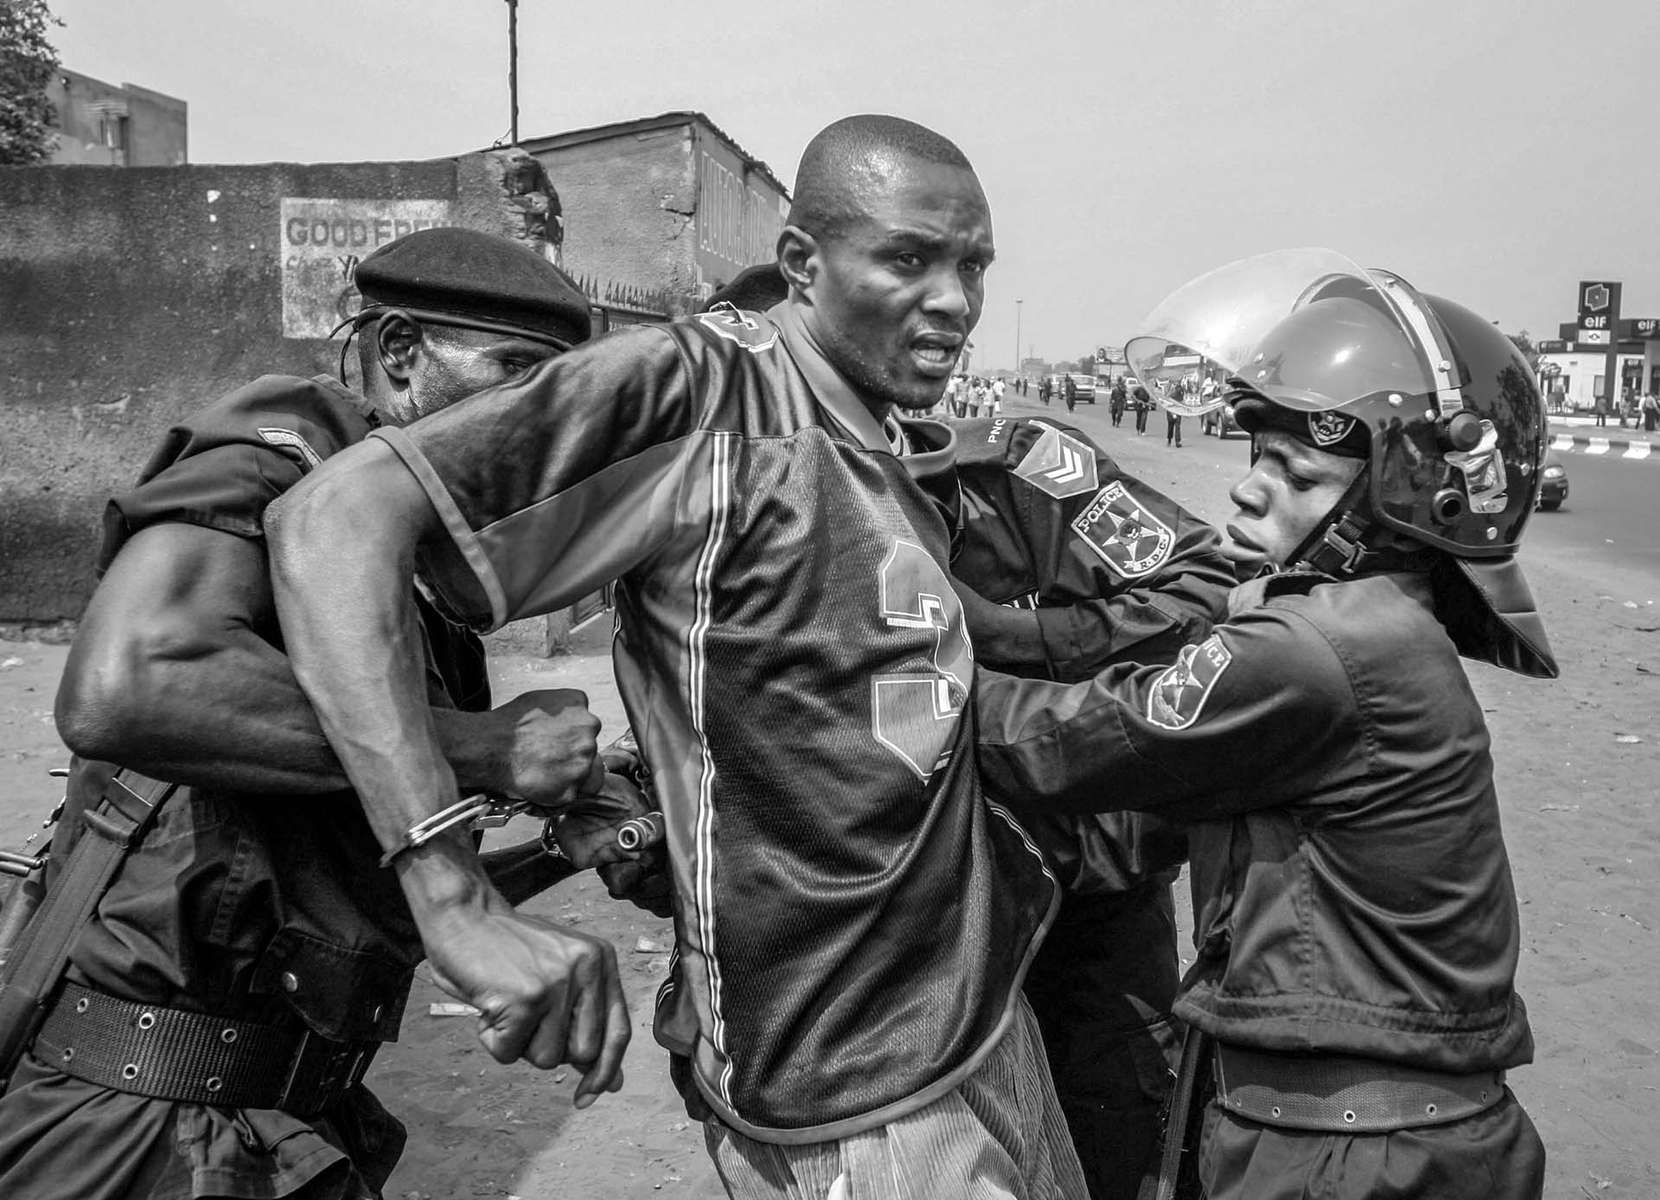 A protester from UDPS is being arrested by the riot police in Kinshasa.